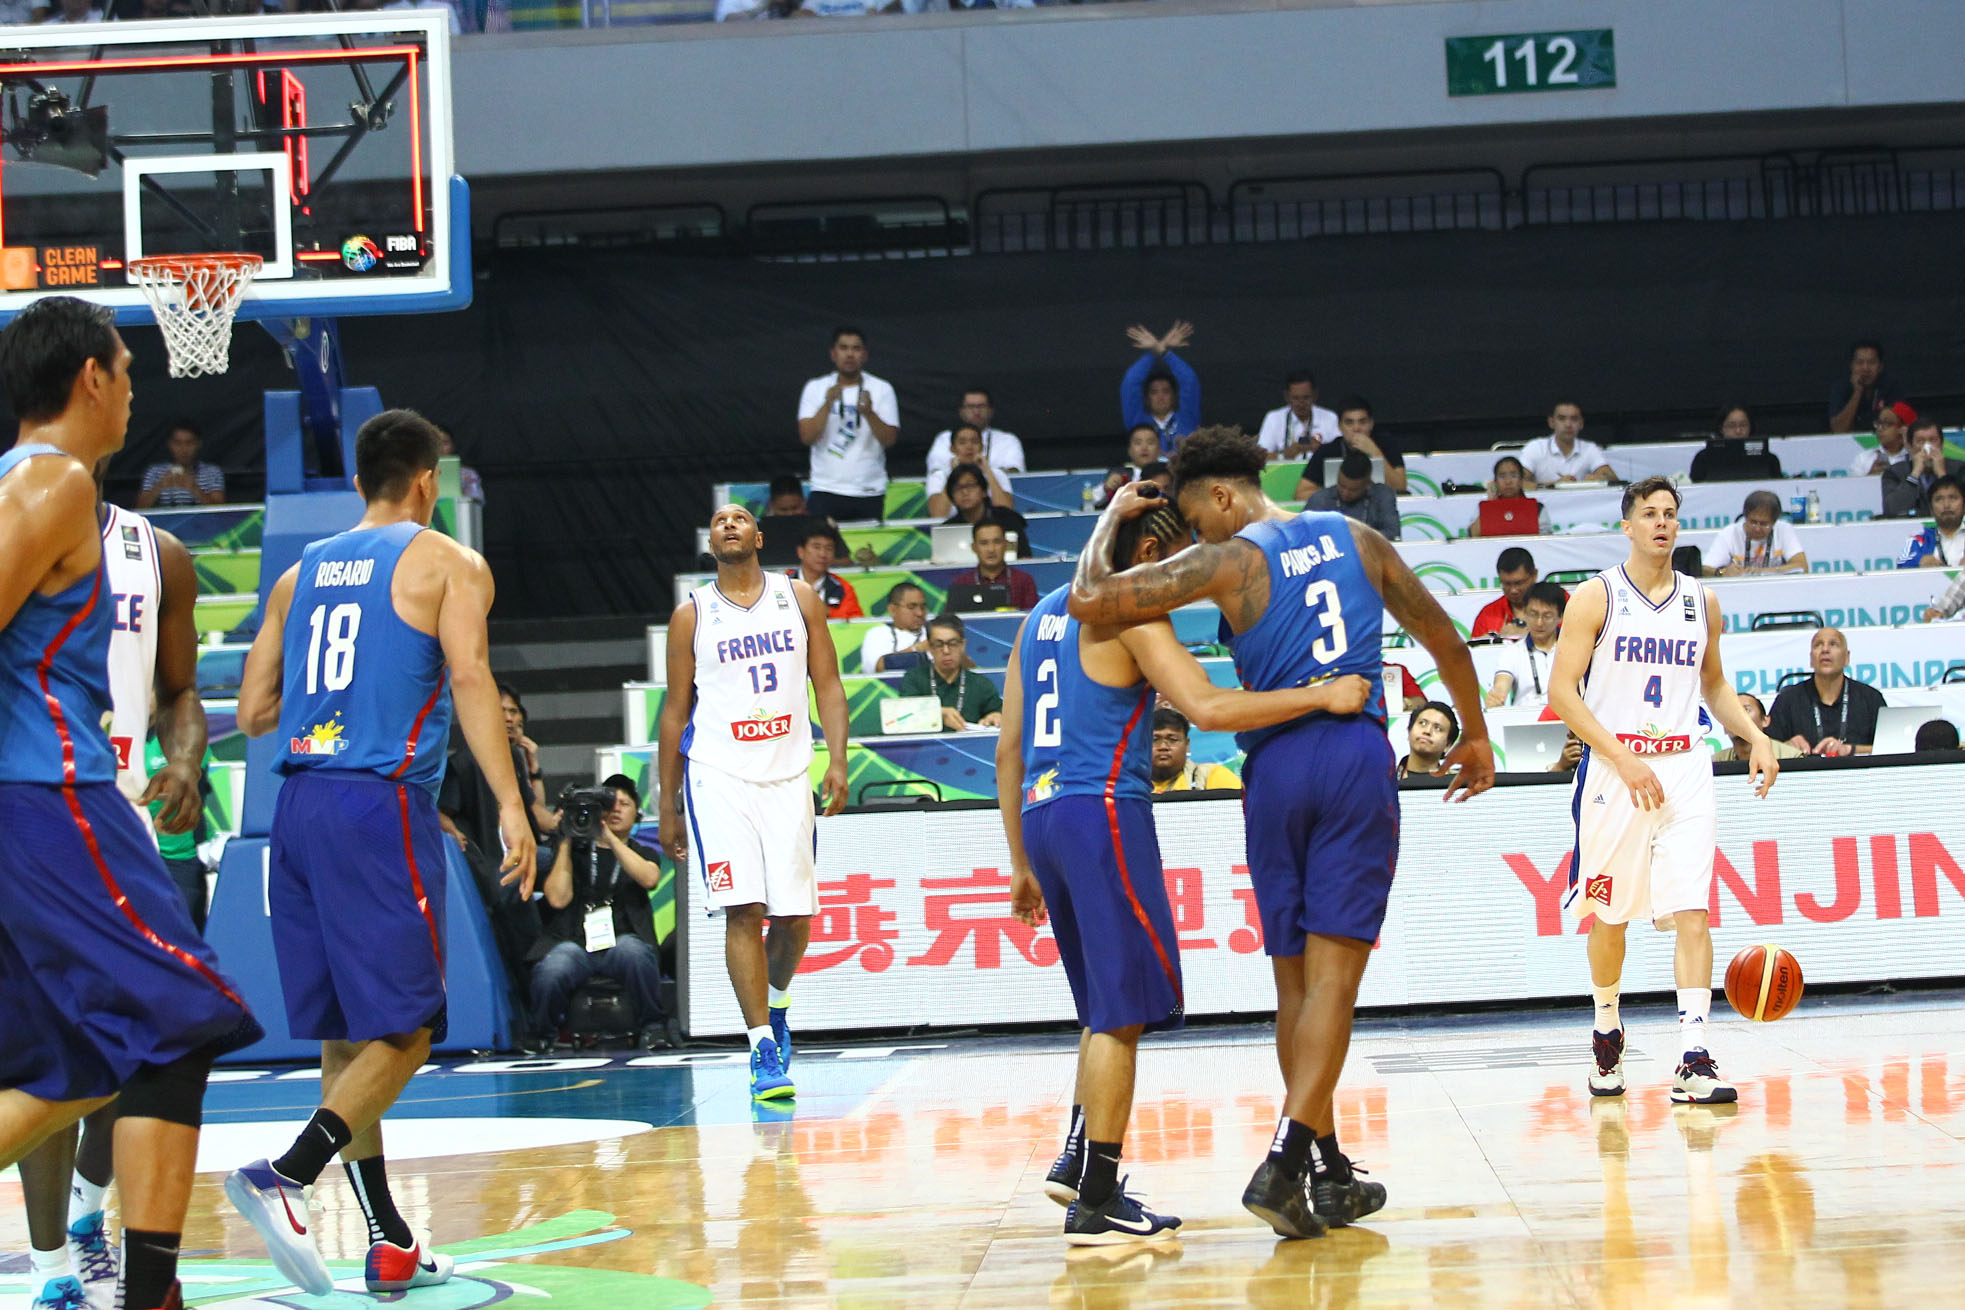 Ray Parks Jr and Terrence Romeo share a moment late in the game against France. Photo by Josh Albelda/Rappler